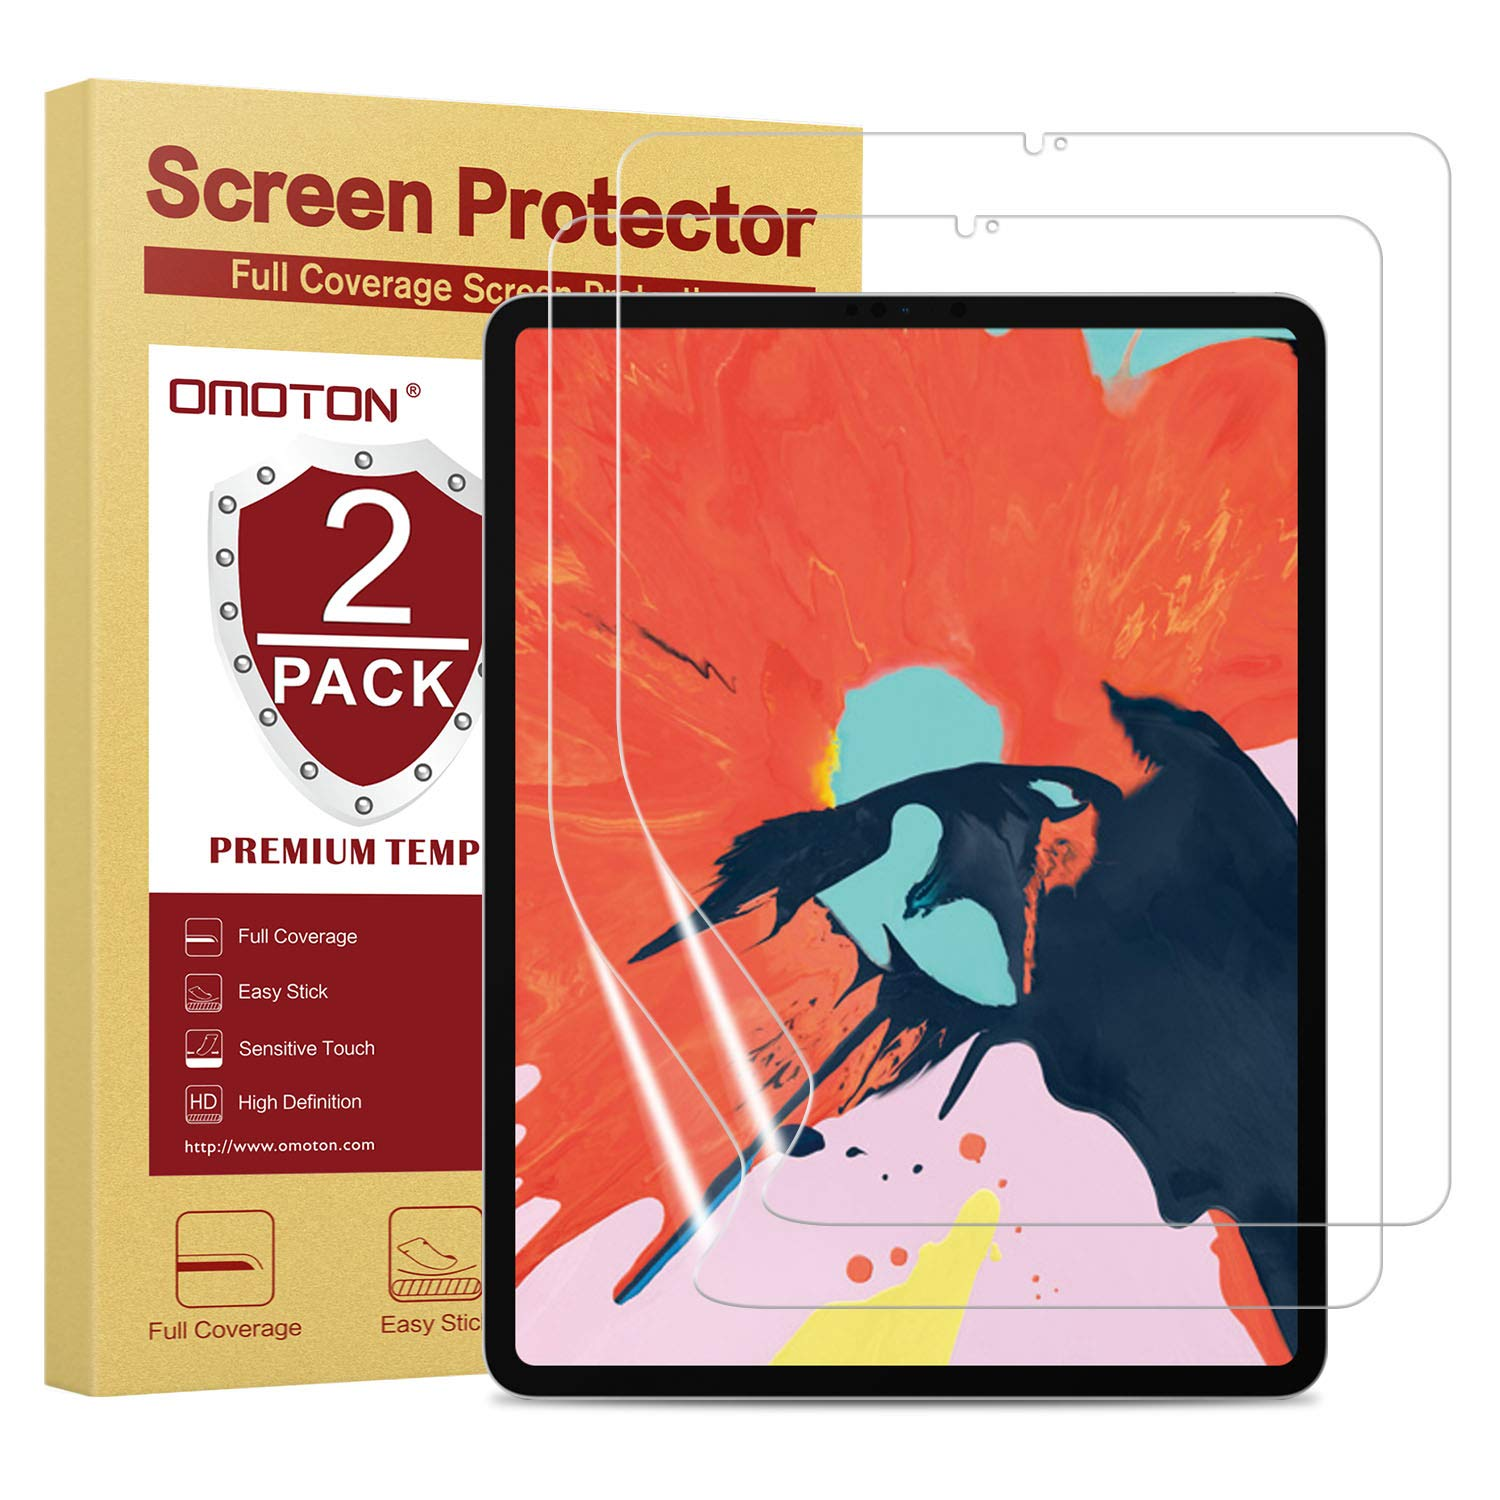 OMOTON Screen Protector for iPad Pro 12.9 (2018 Release) - TPU Film Screen Protector for 3rd Generation iPad Pro 12.9 inch [2 Pack], Ultra Thin/Original Touch Sensitivity